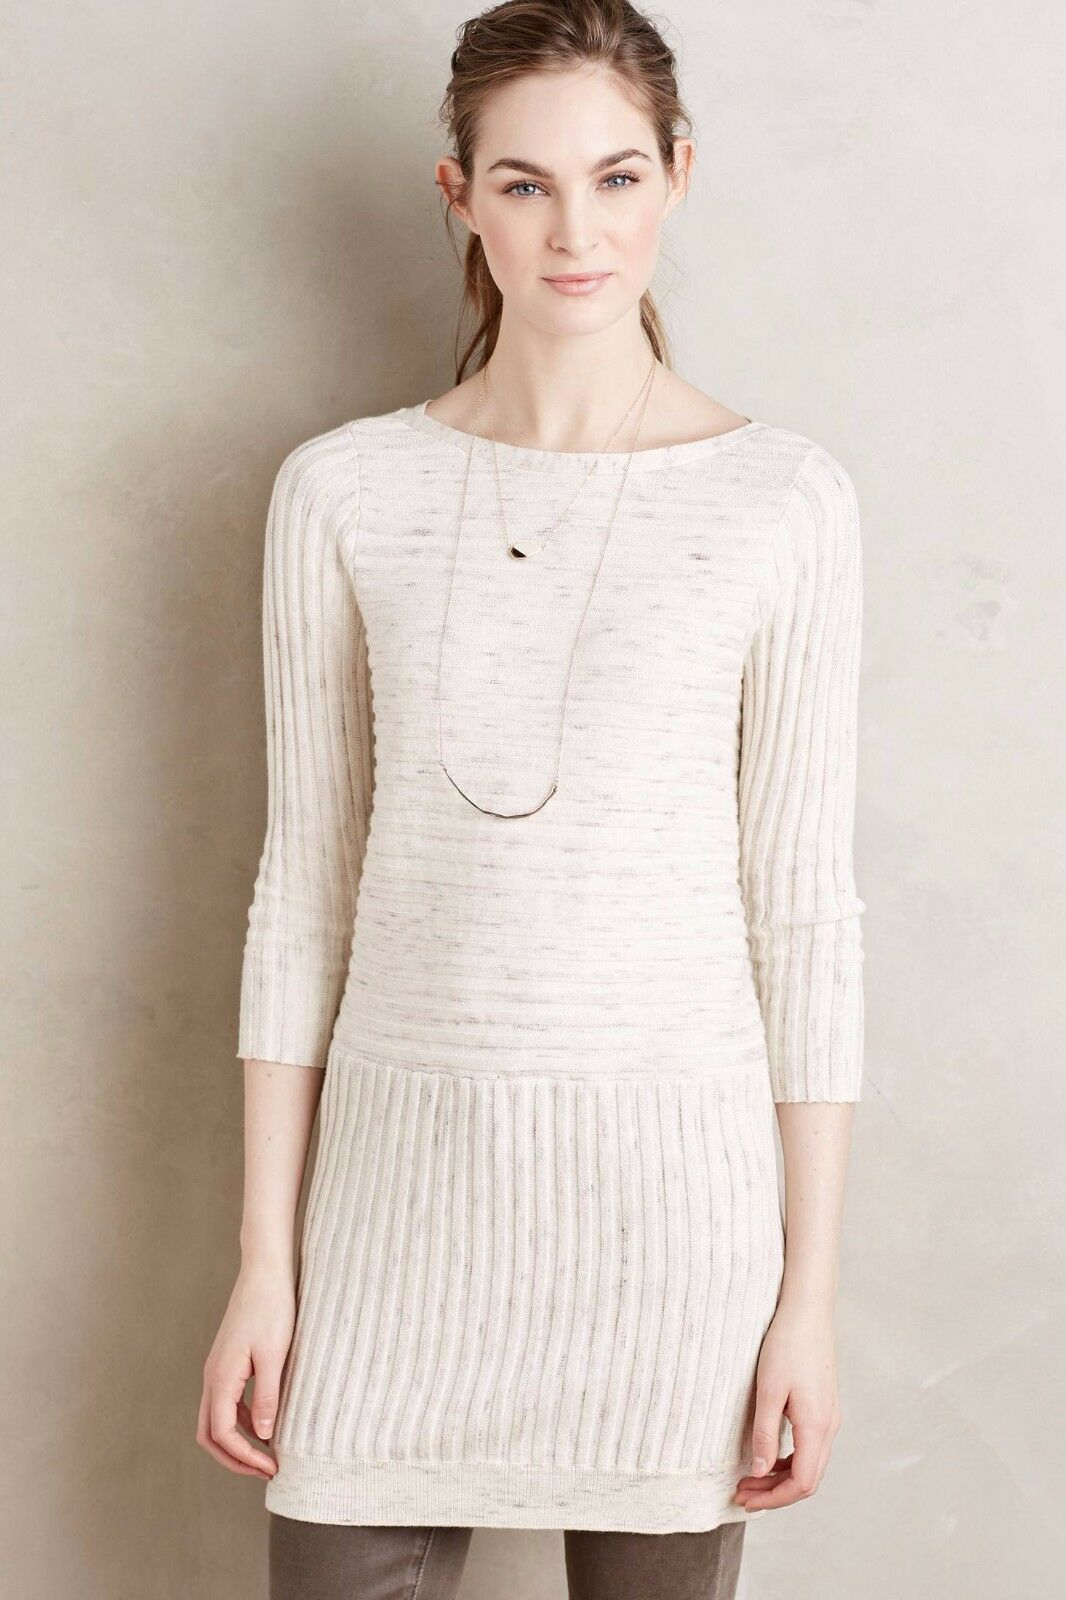 NWT Anthropologie Ribbed Sweater Tunic Size L